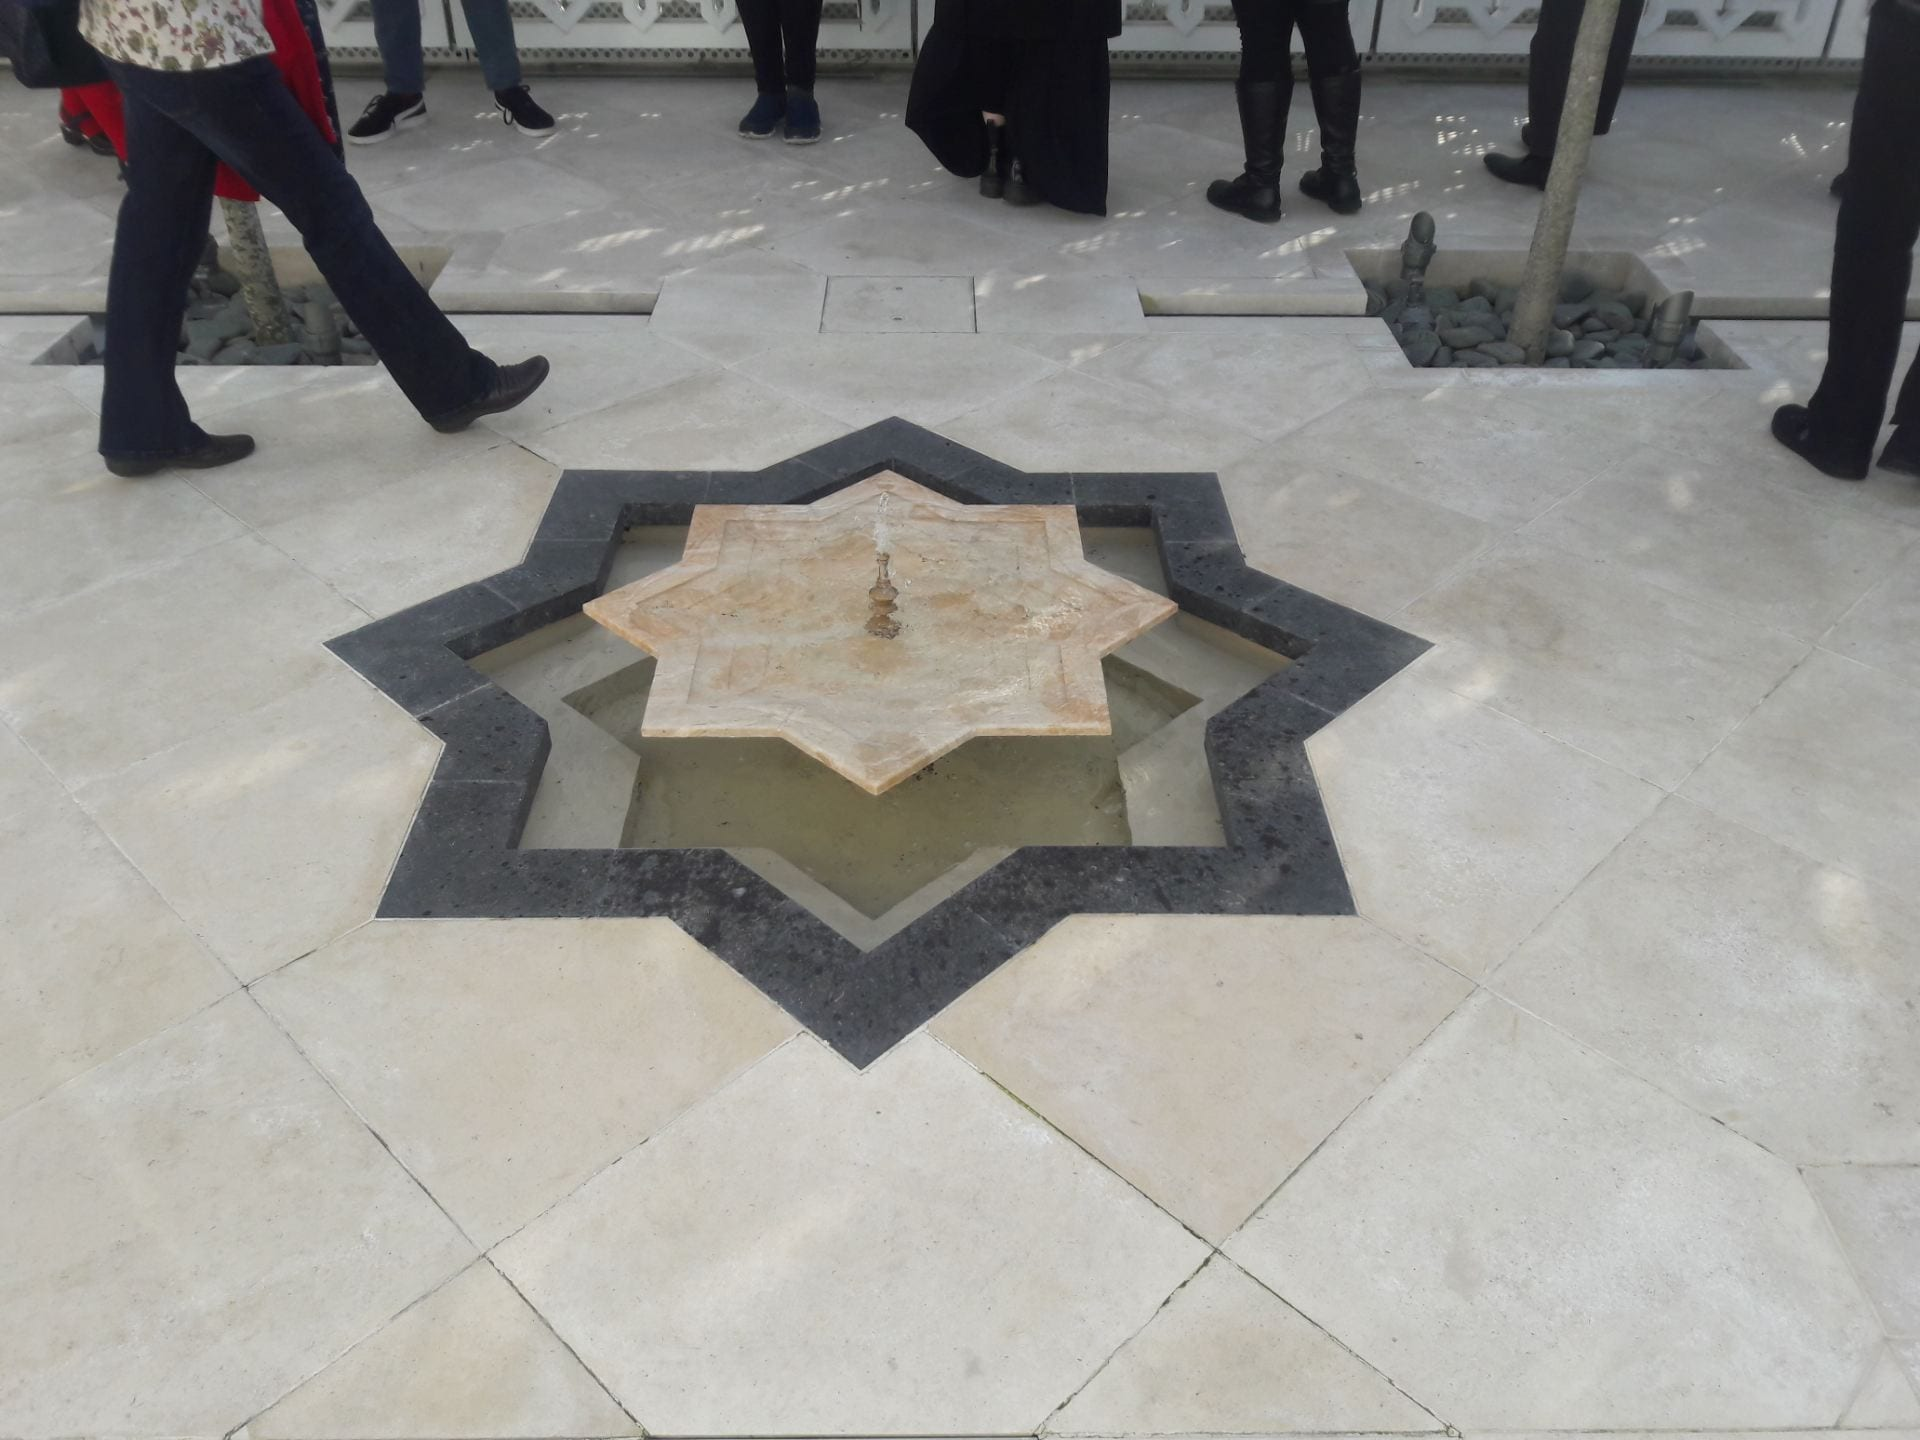 A small fountain in one of the Aga Khan Terrace gardens. The fountain is cut into the cream paving slabs and is shaped as an 8 pointed star.